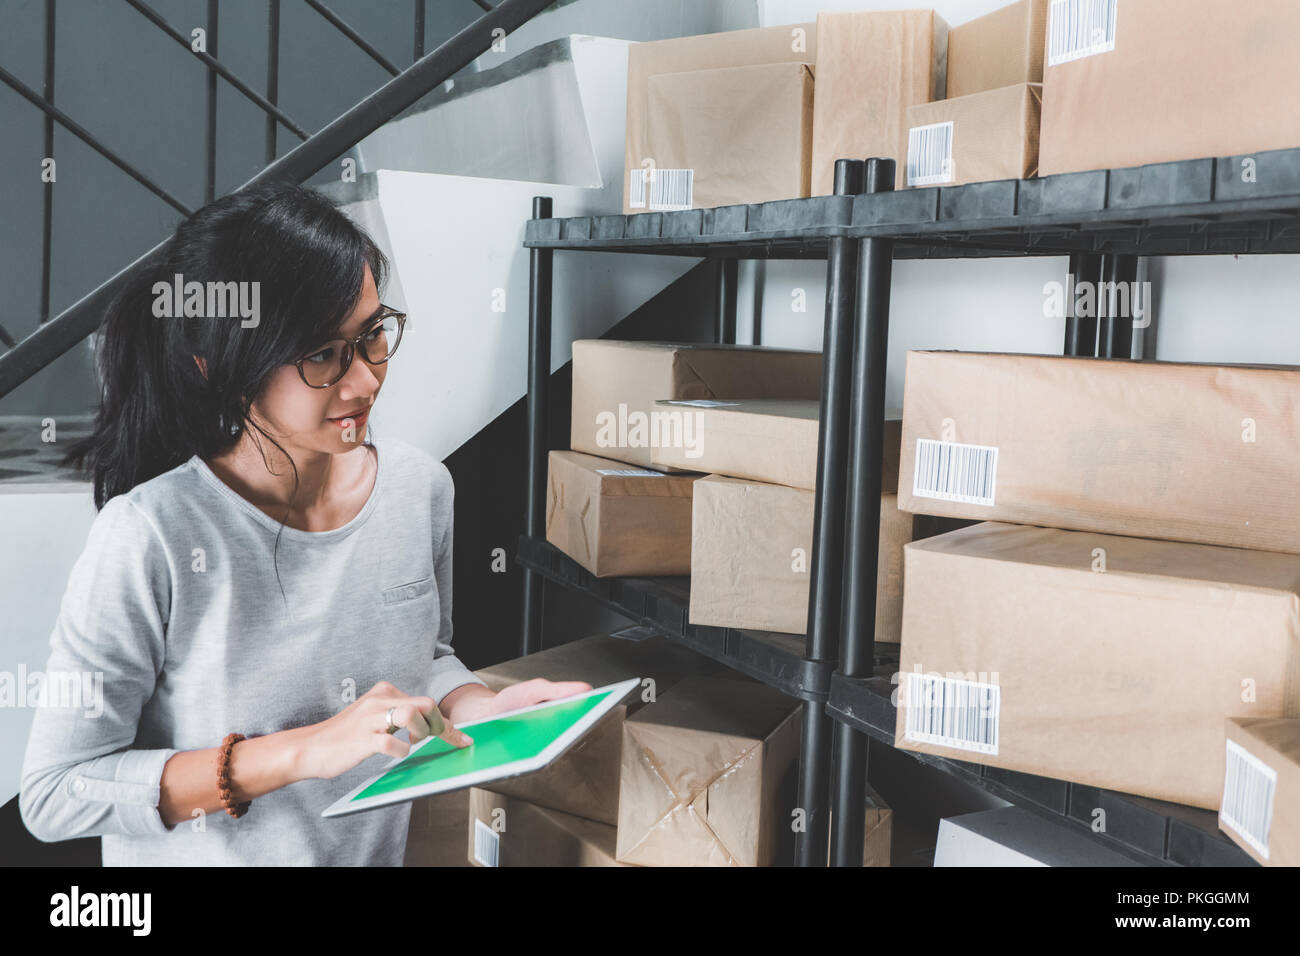 woman counting on package on a shelf - Stock Image